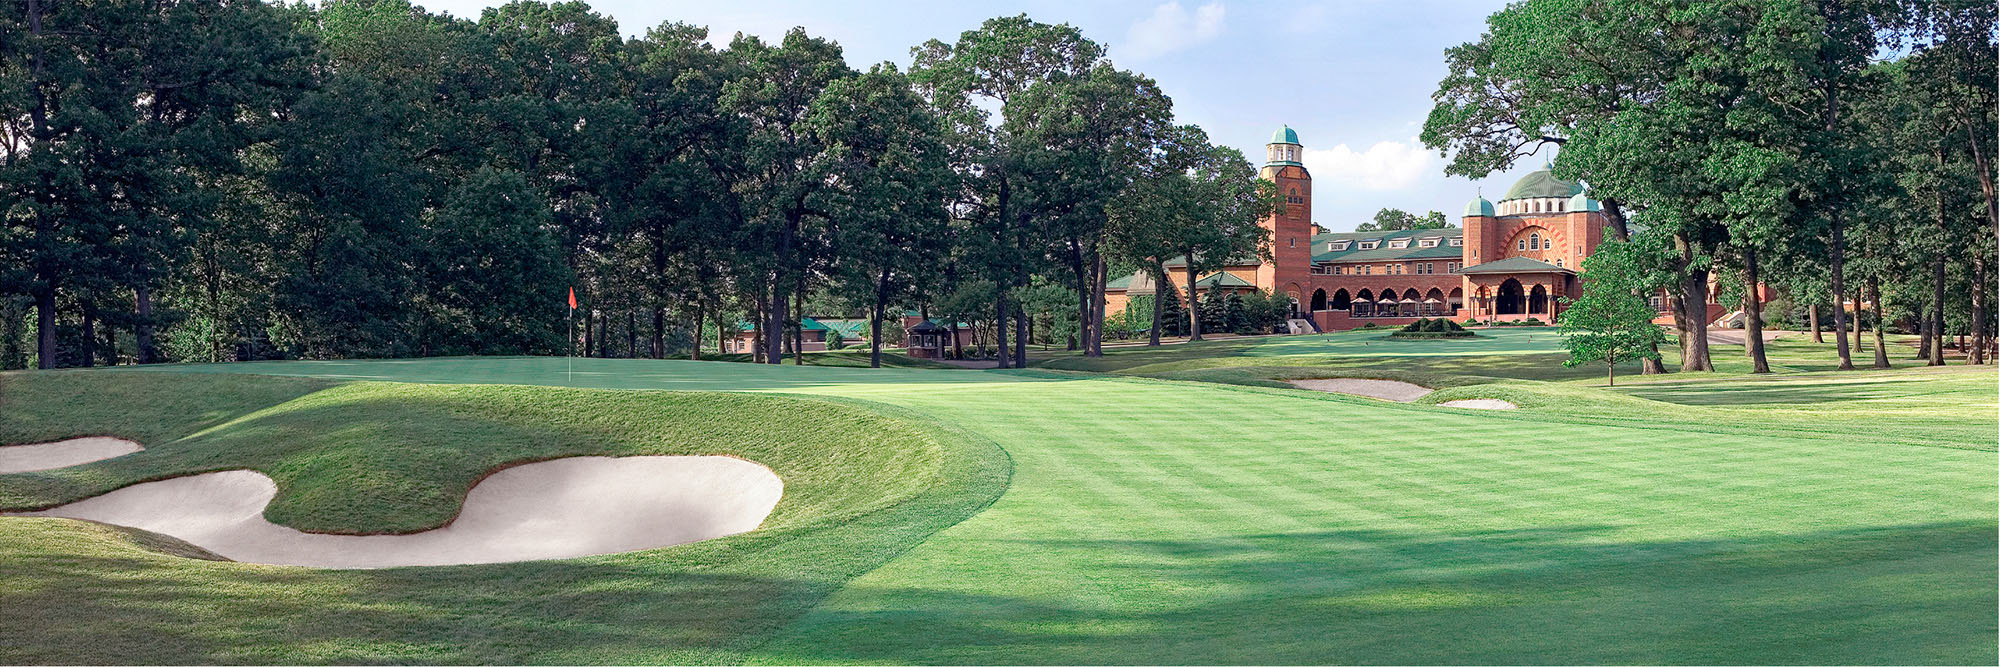 Golf Course Image - Medinah 3 No. 18